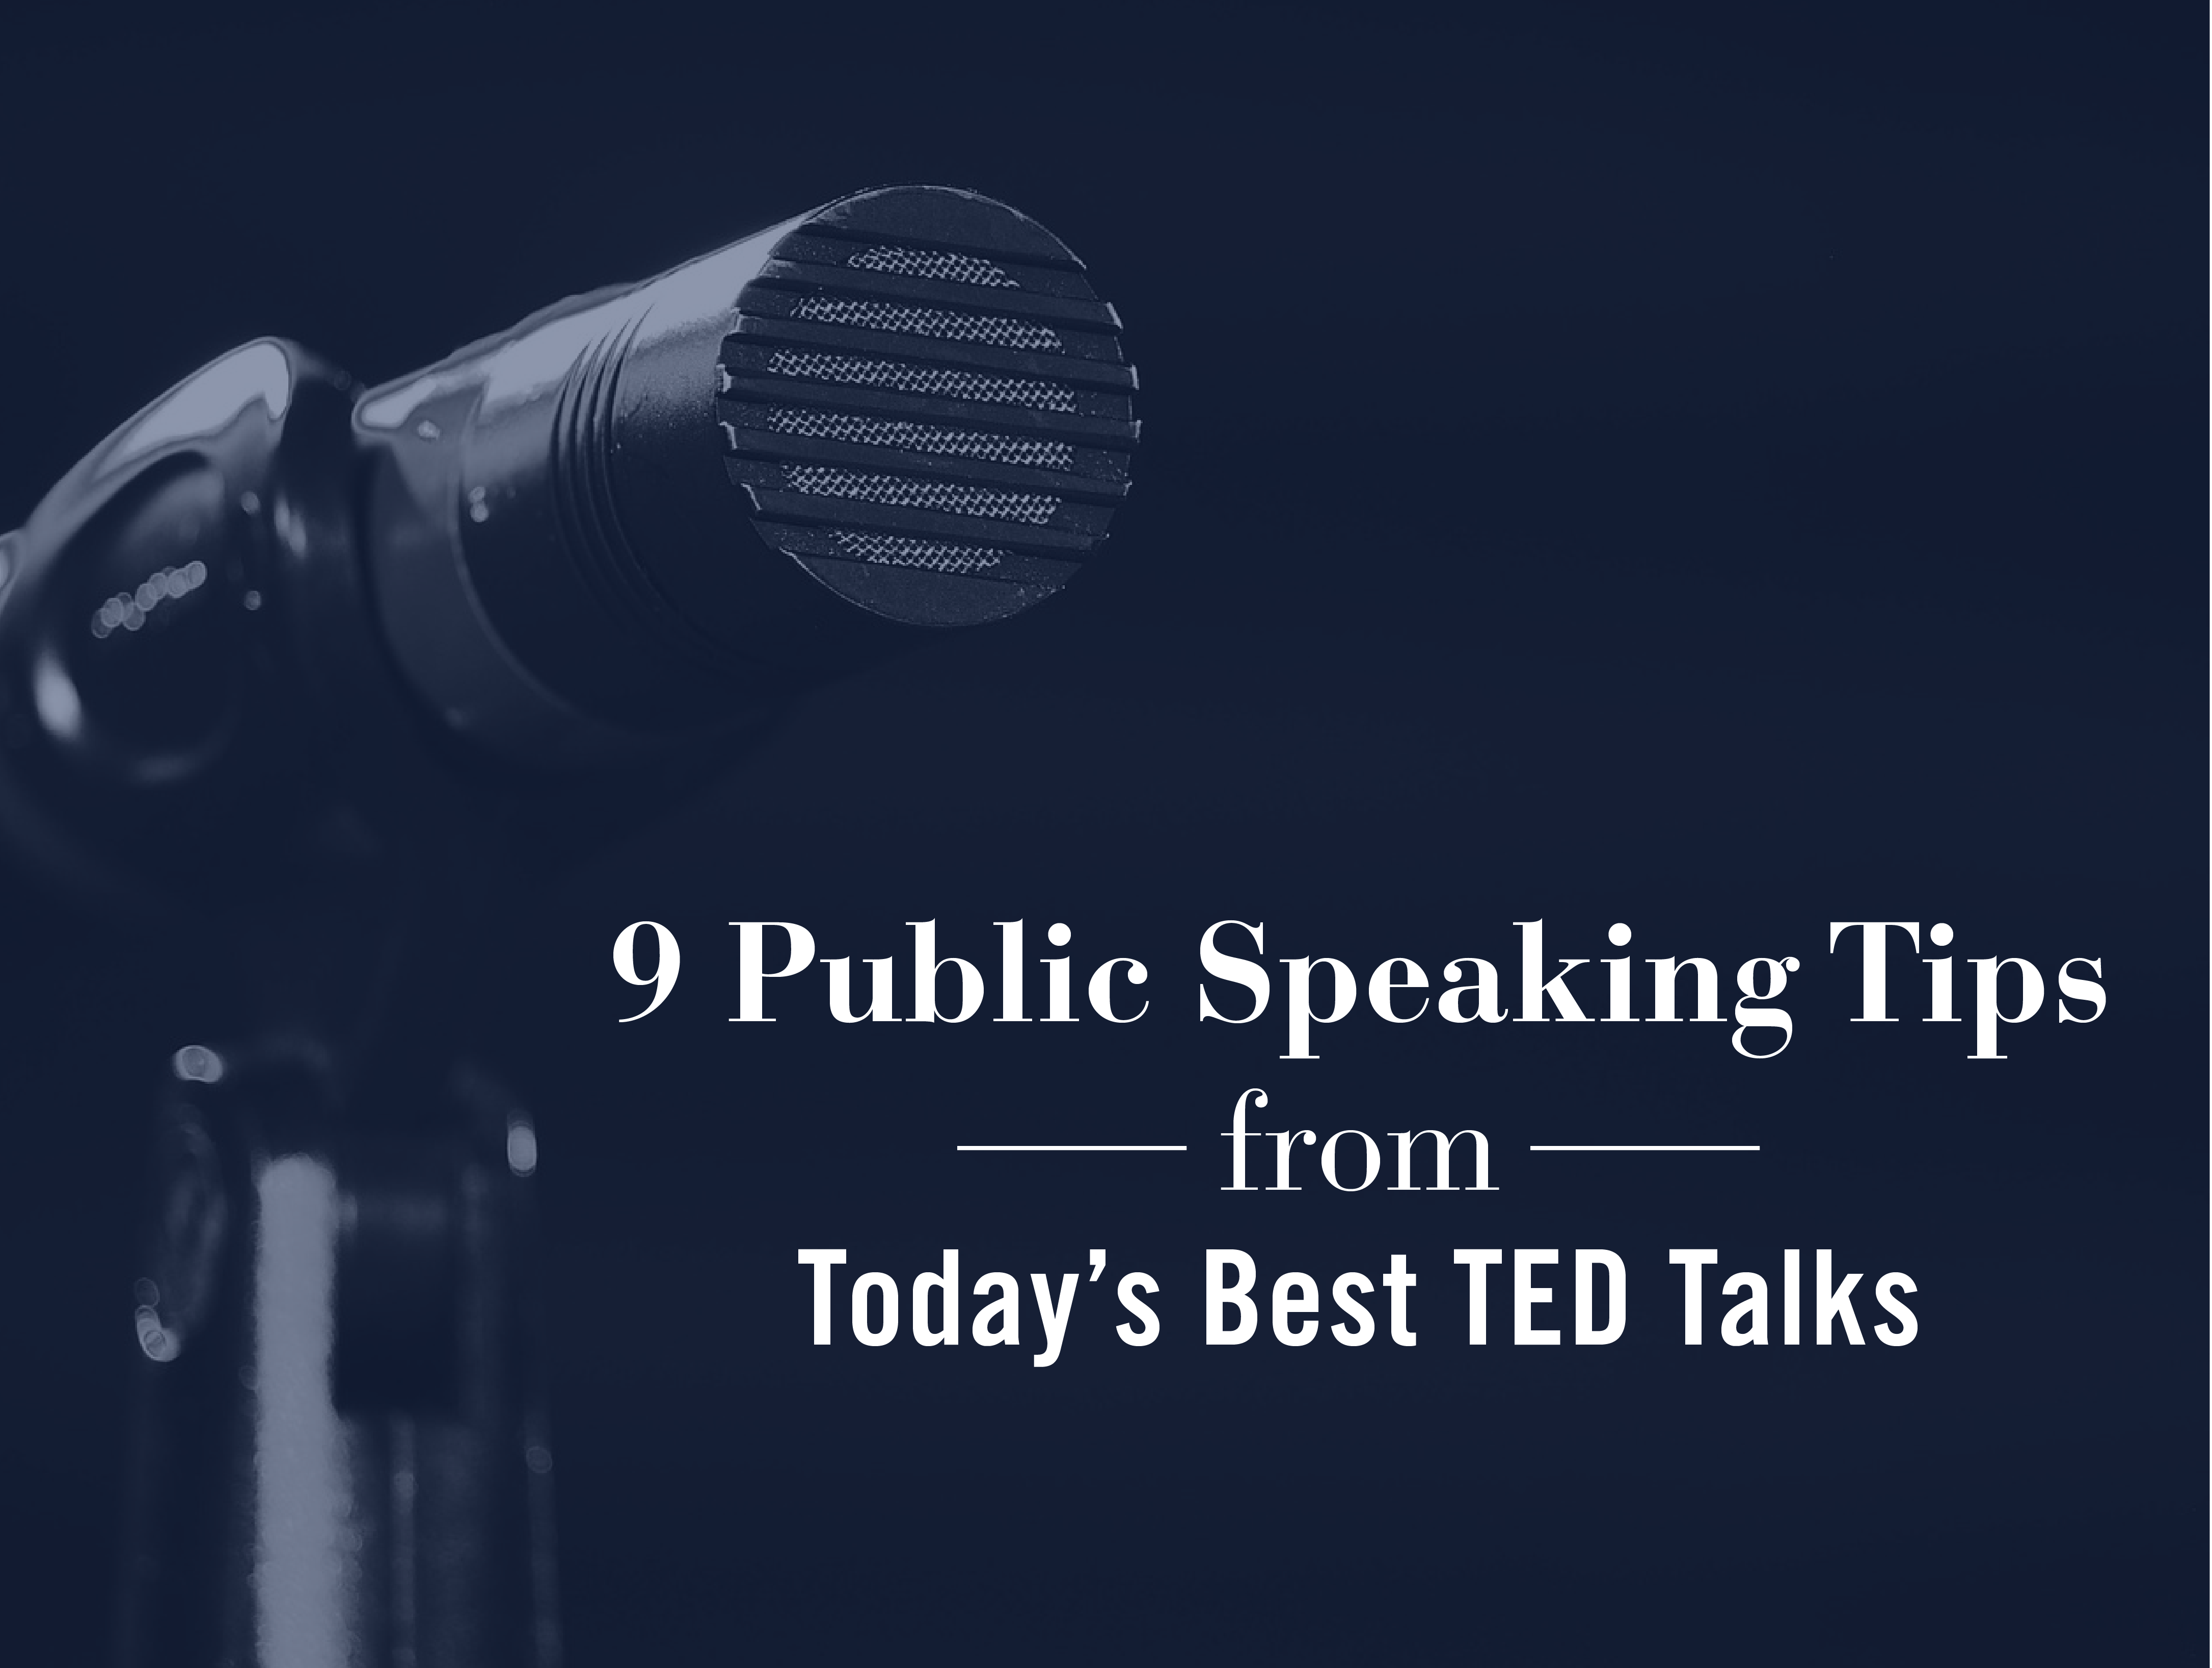 9 Public Speaking Tips from Today's Best TED Talks from Carmine Gallo 3-01